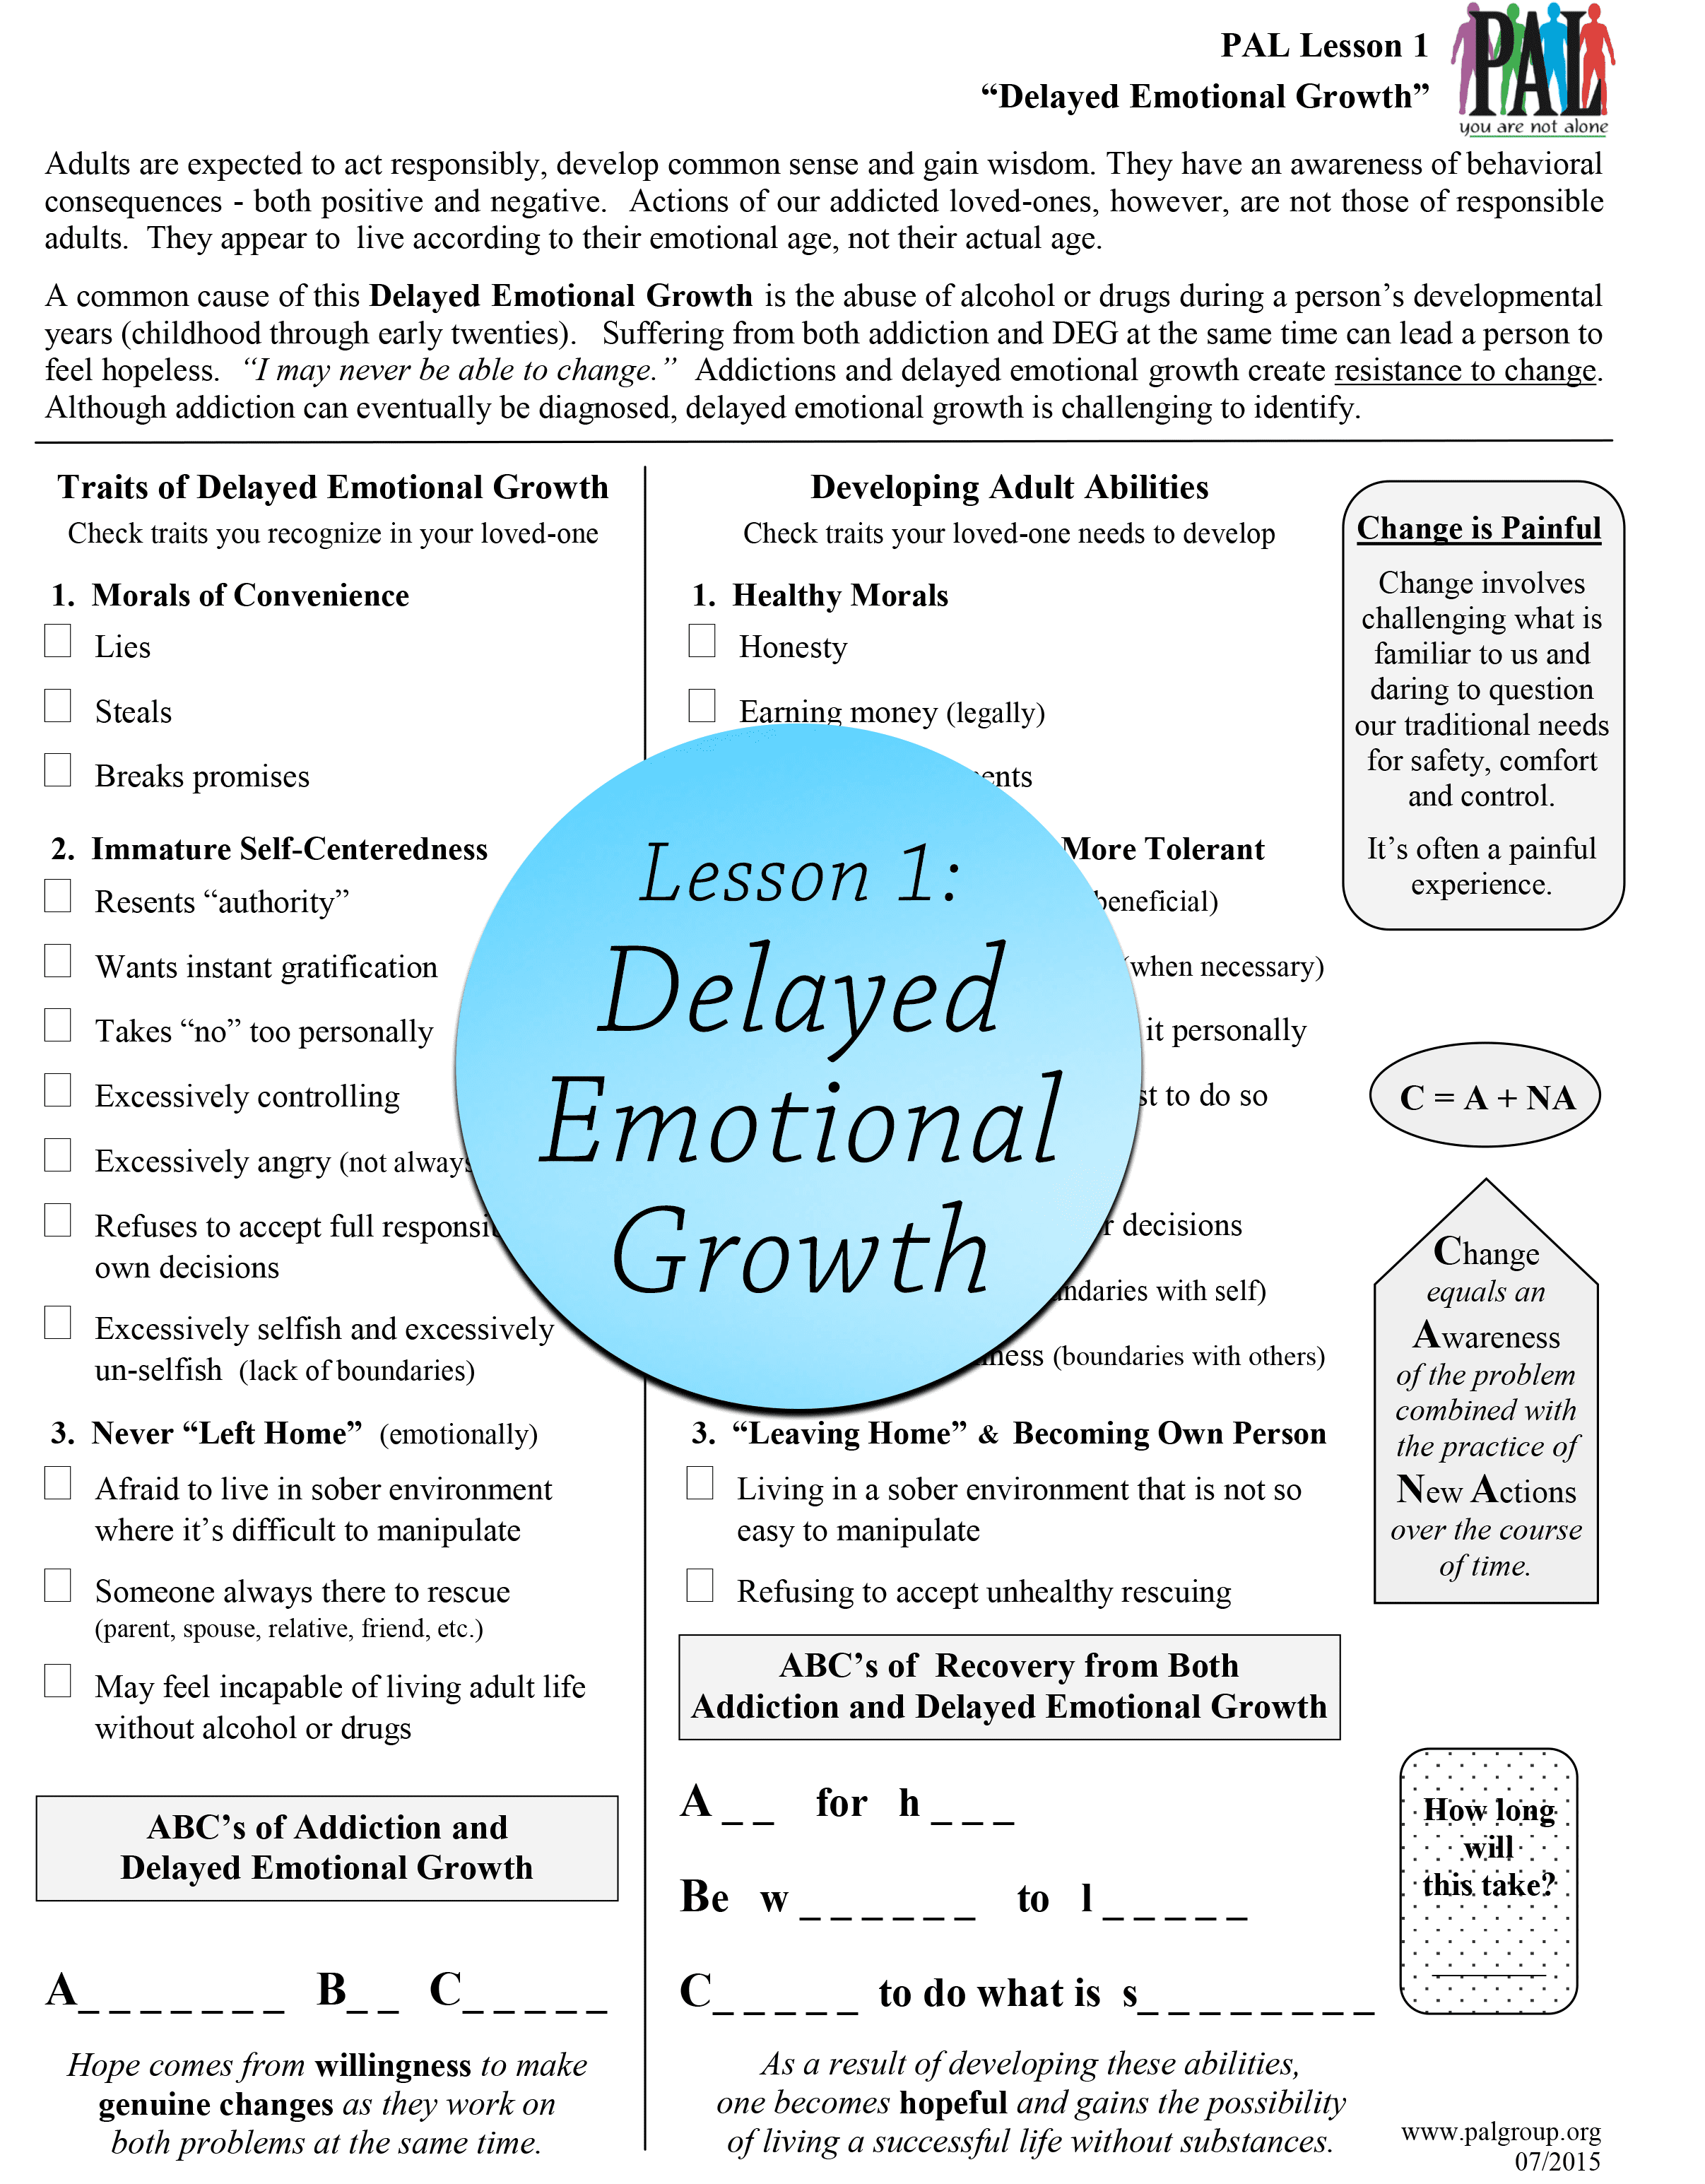 Lesson 1: Delayed Emotional Growth